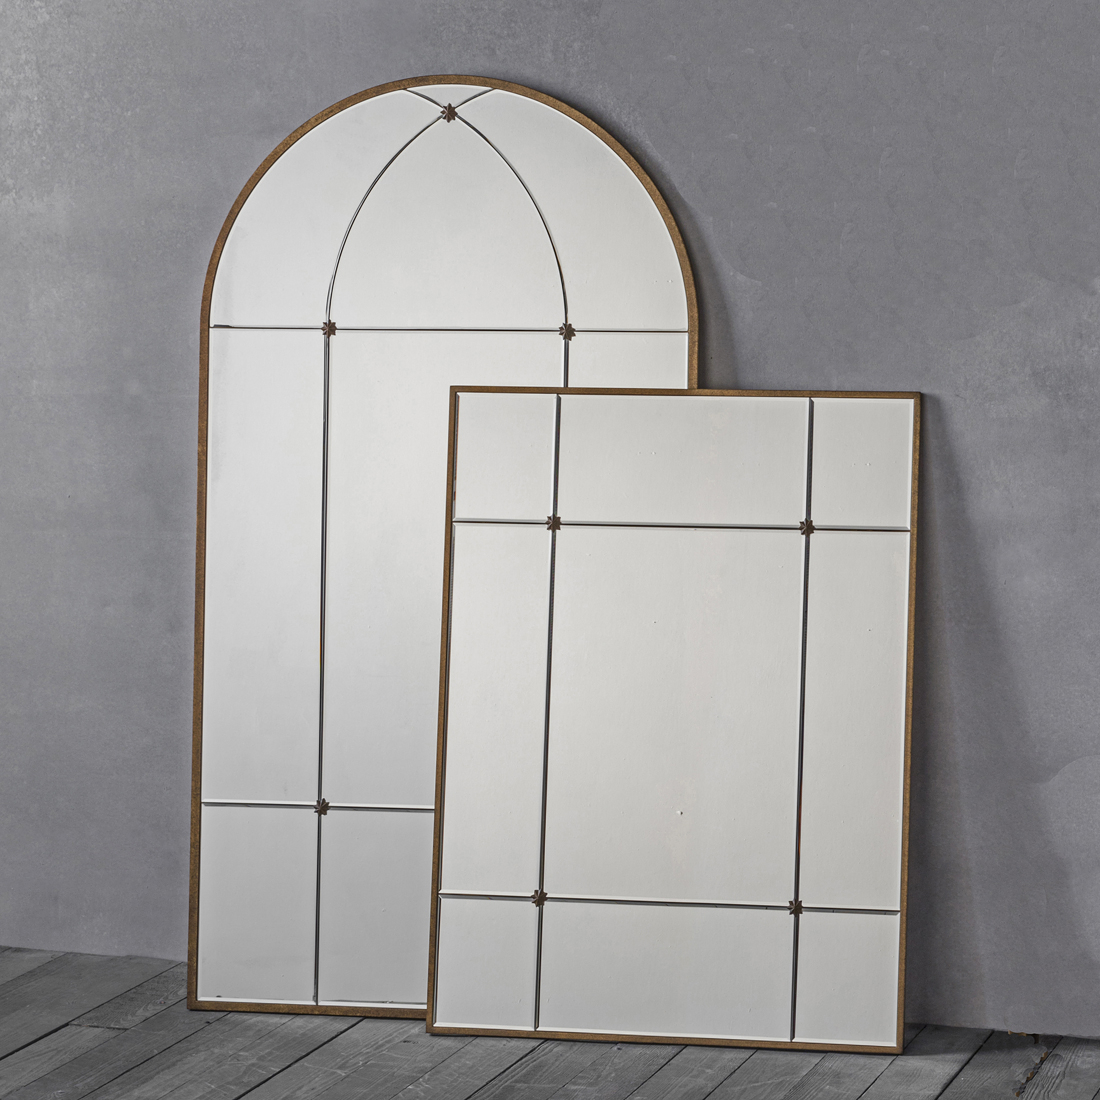 Gold Window Wall Mirror – Arch Or Rectangle Intended For Gold Arch Wall Mirrors (View 15 of 30)